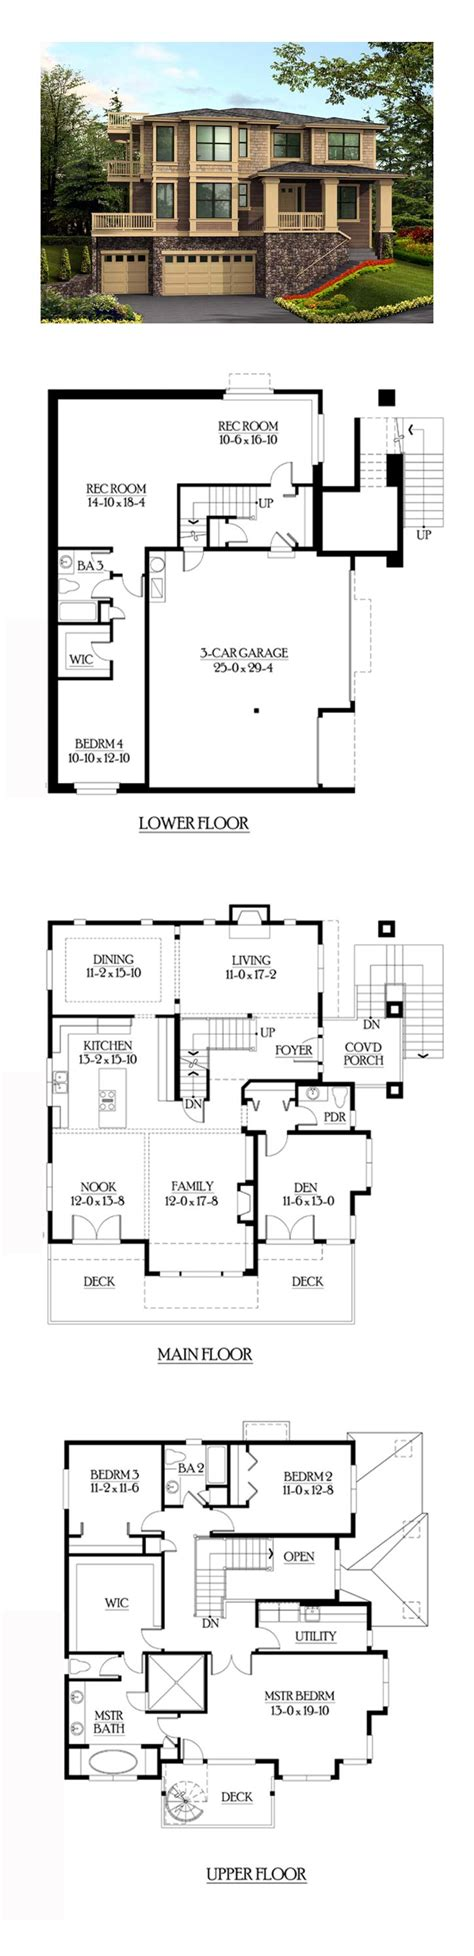 house plans with finished basements finished basement cool house plan id chp 39324 total